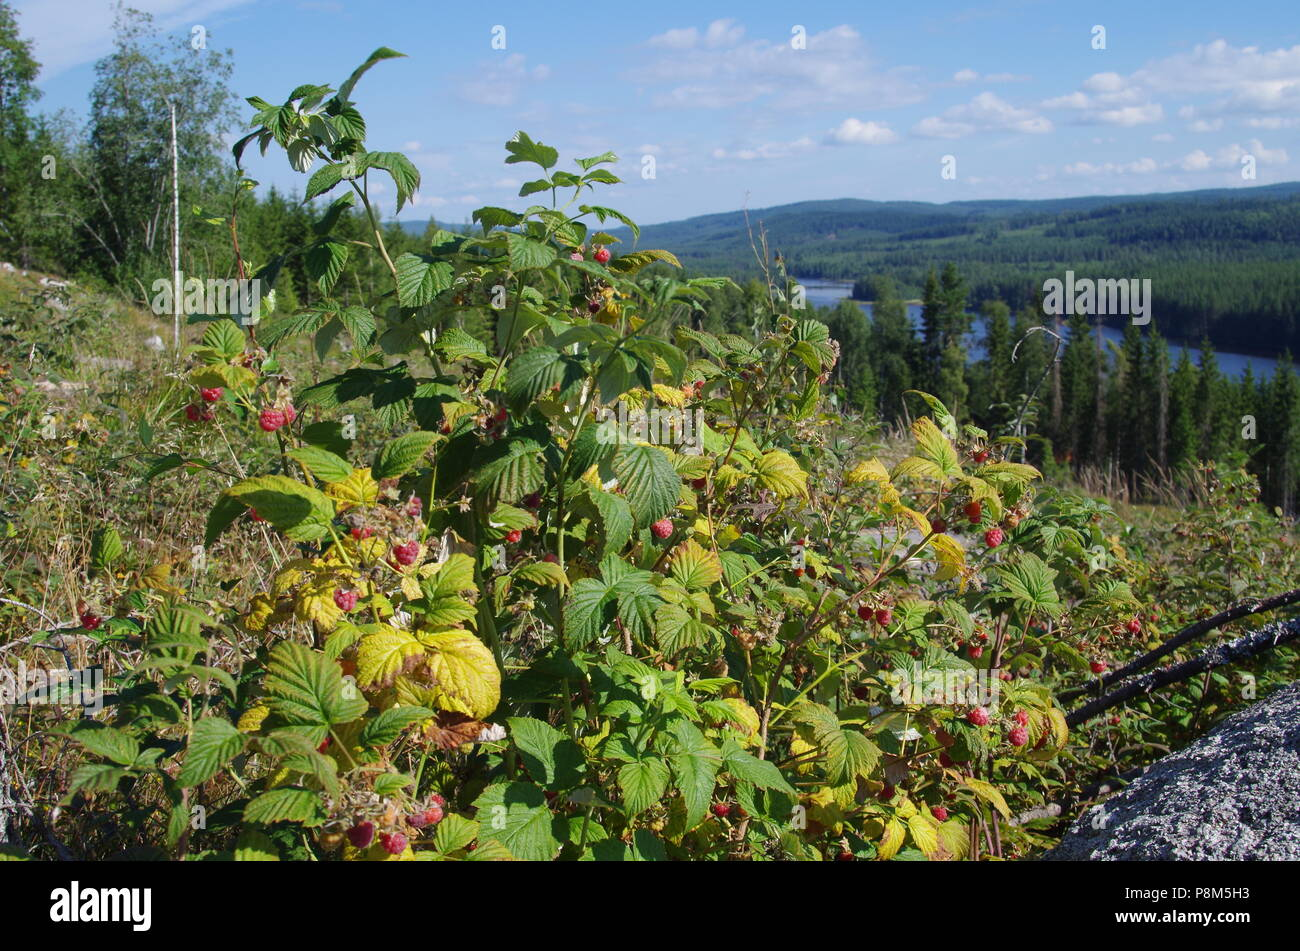 Scenic views with a lake,forest,blueberries and raspberries - Stock Image